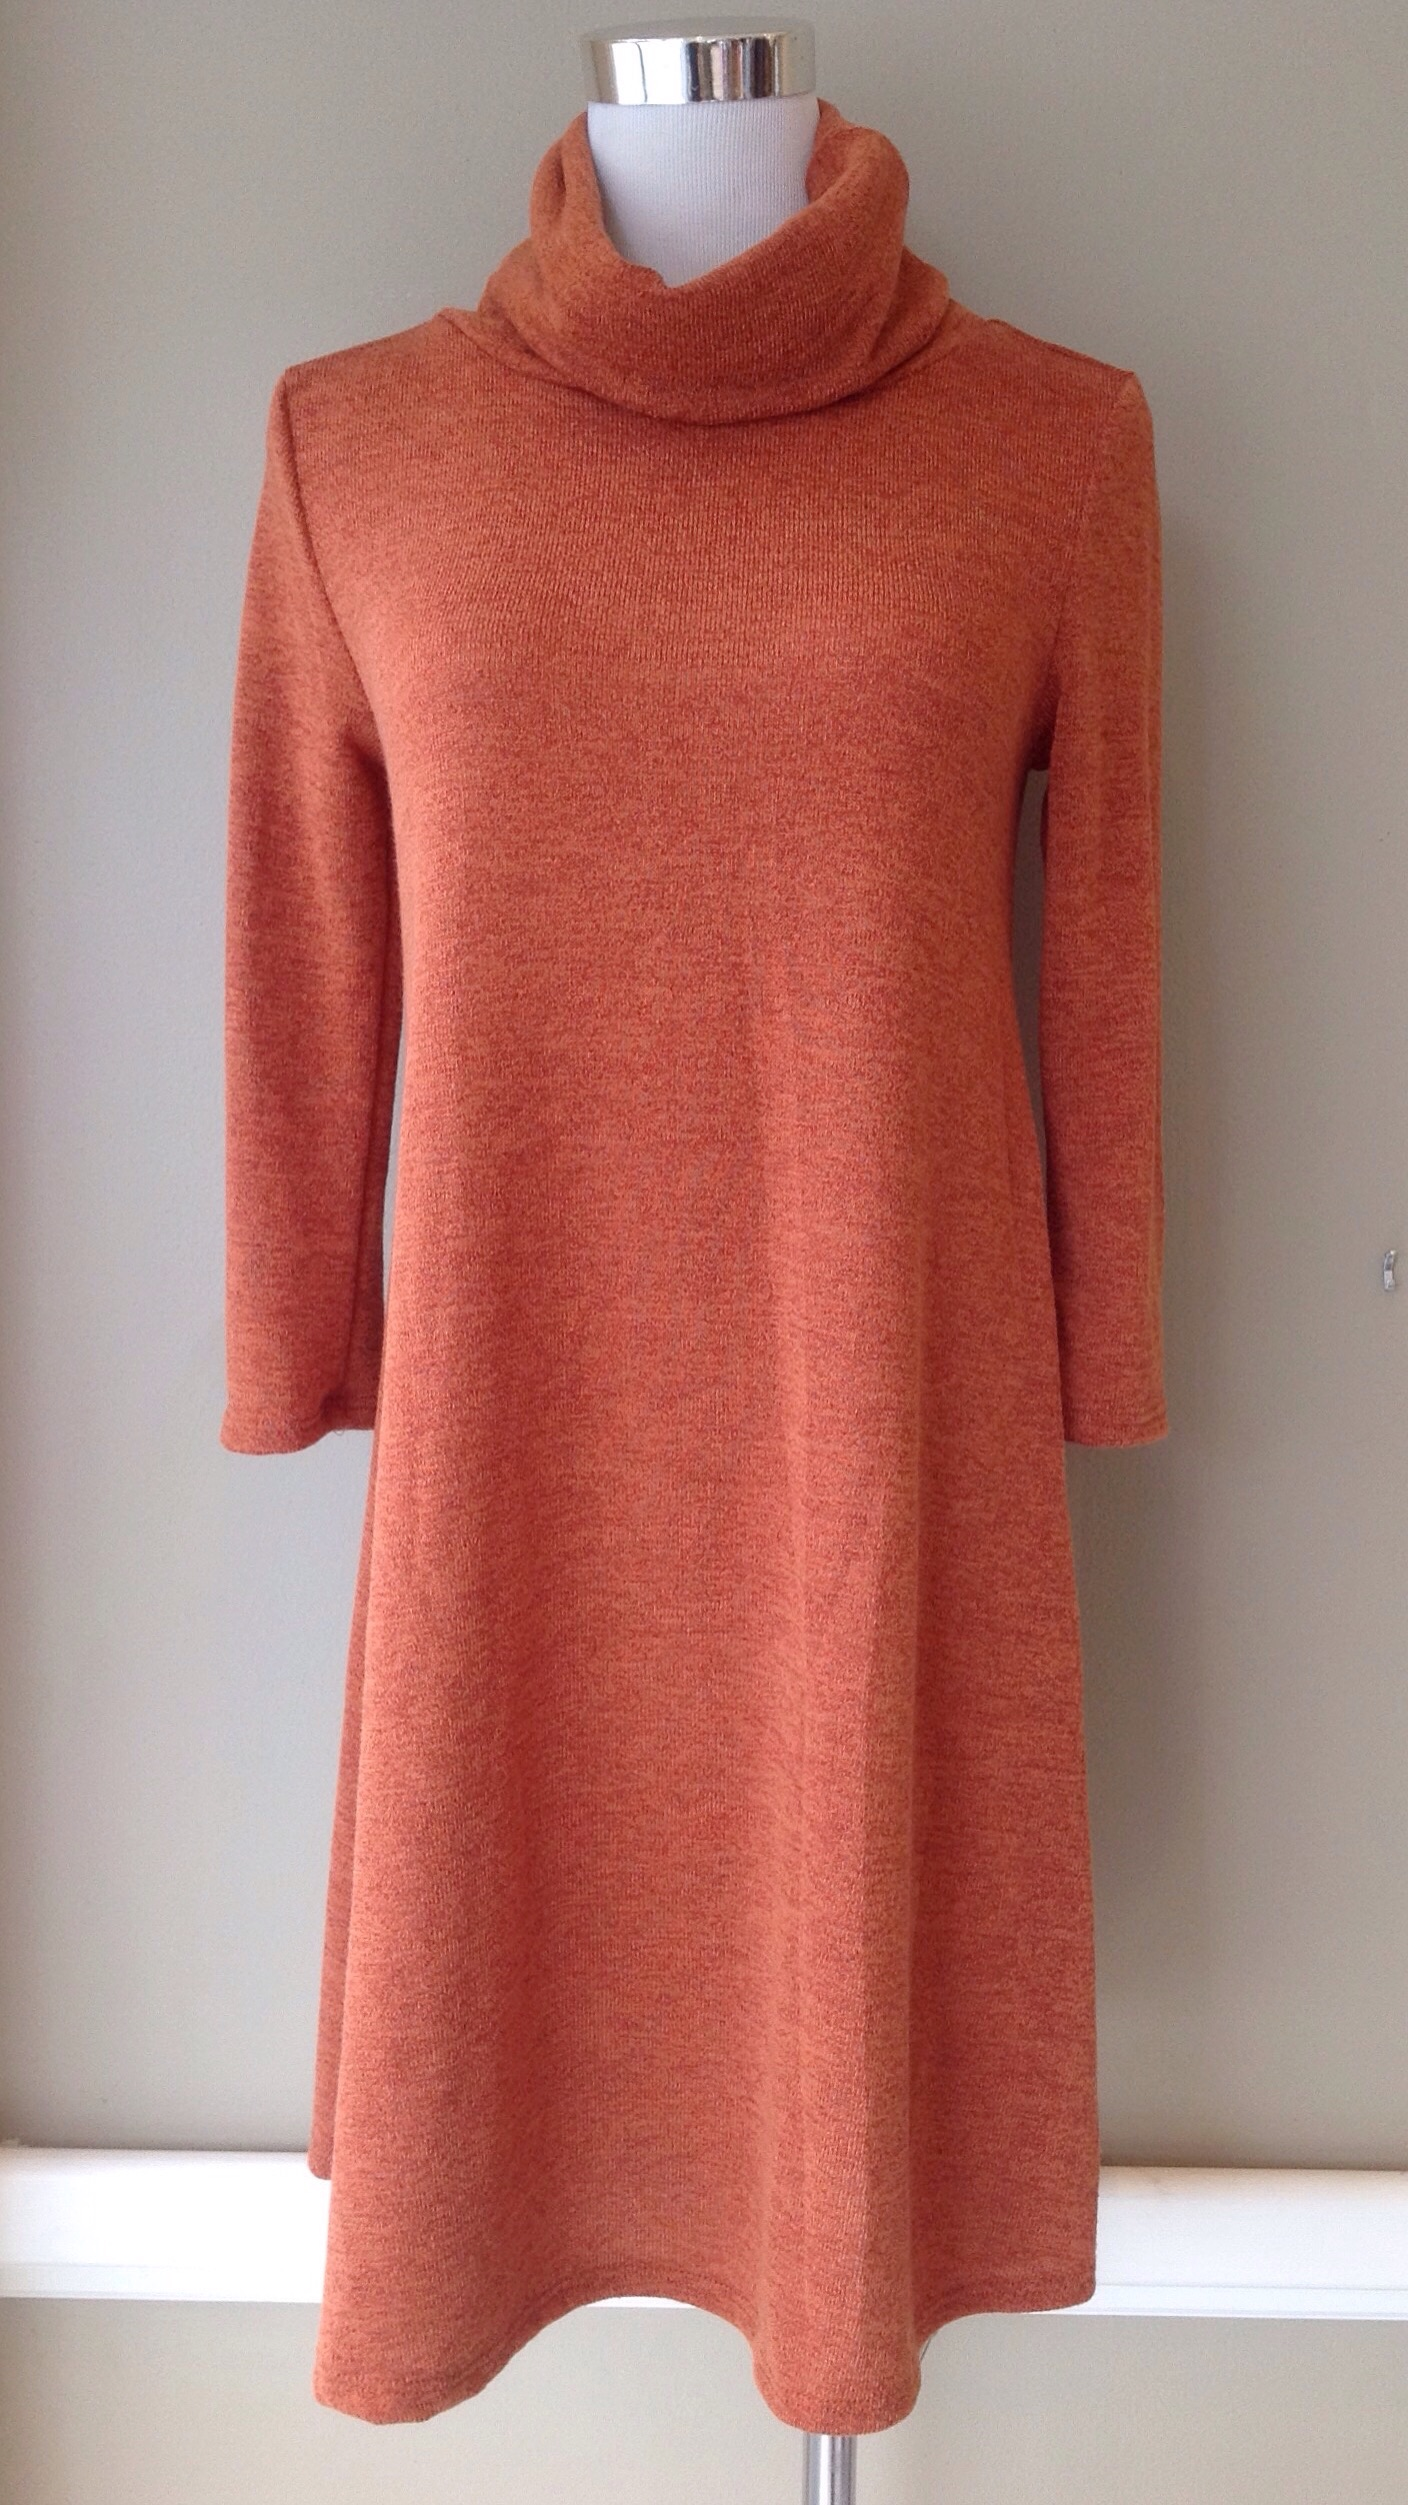 Turtleneck sweater dress, $38